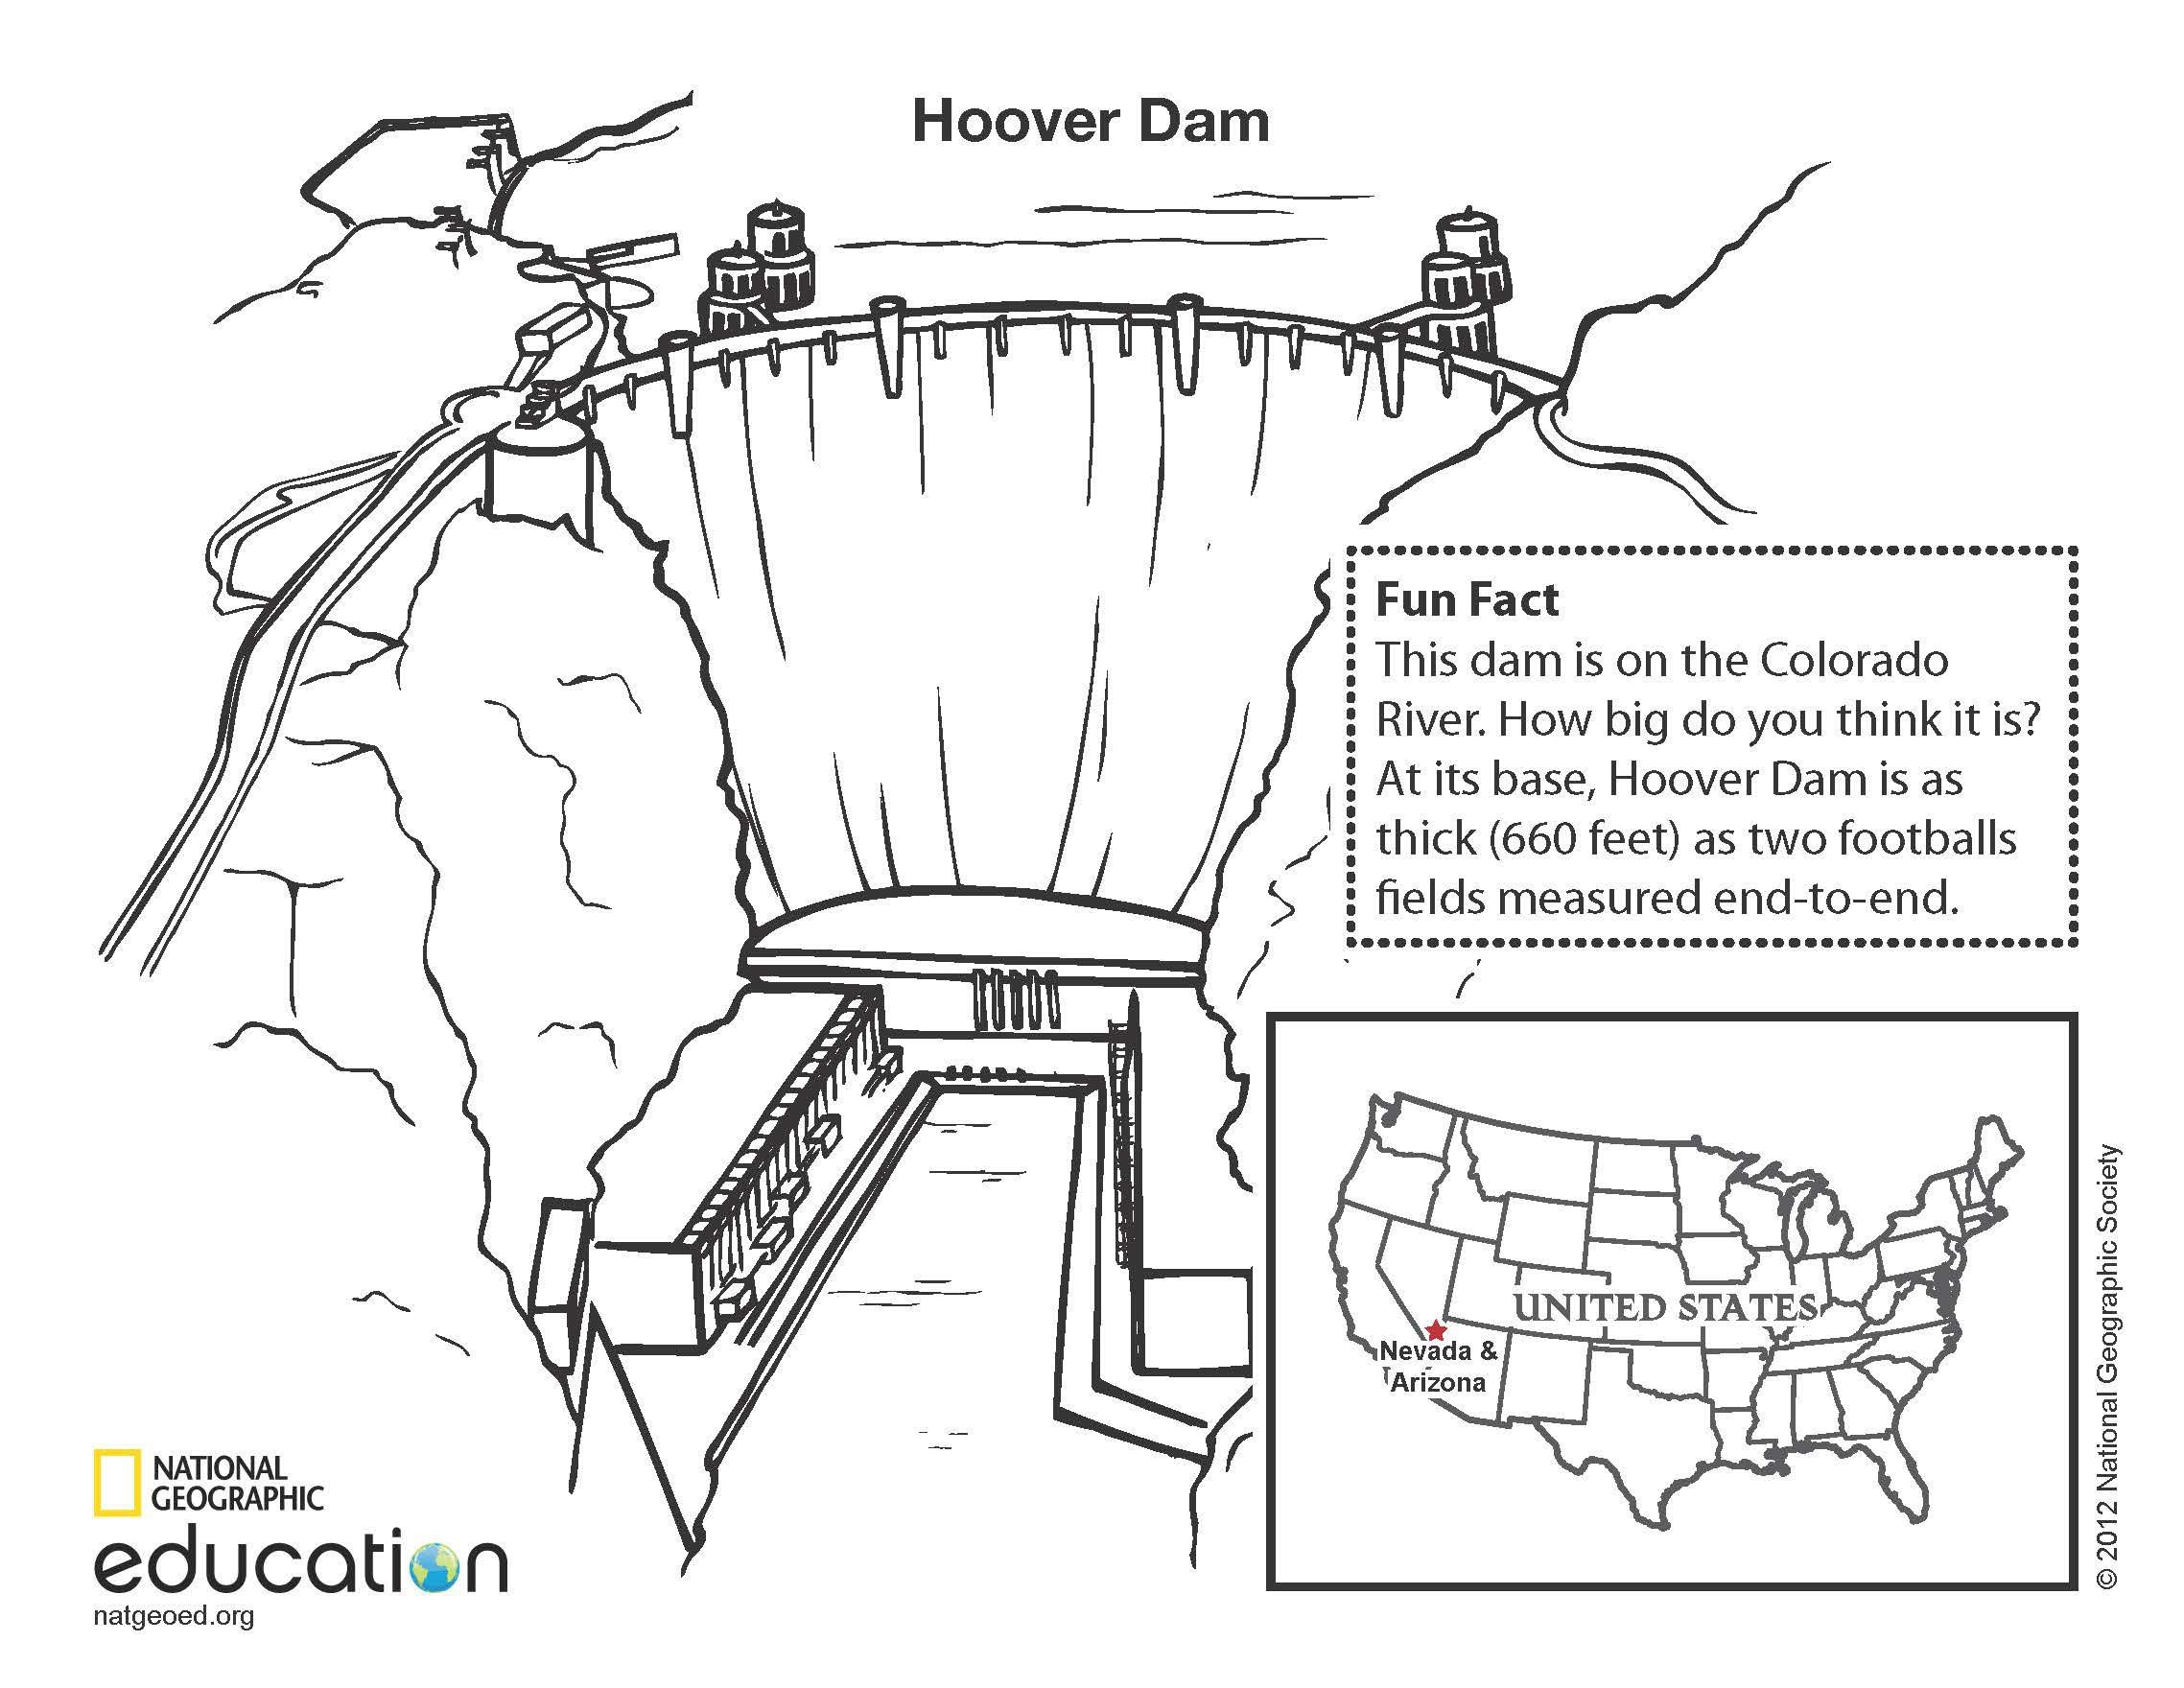 Download And Print This Coloring Page Of A Famous United States Landmark Hoover Dam Hoover Dam